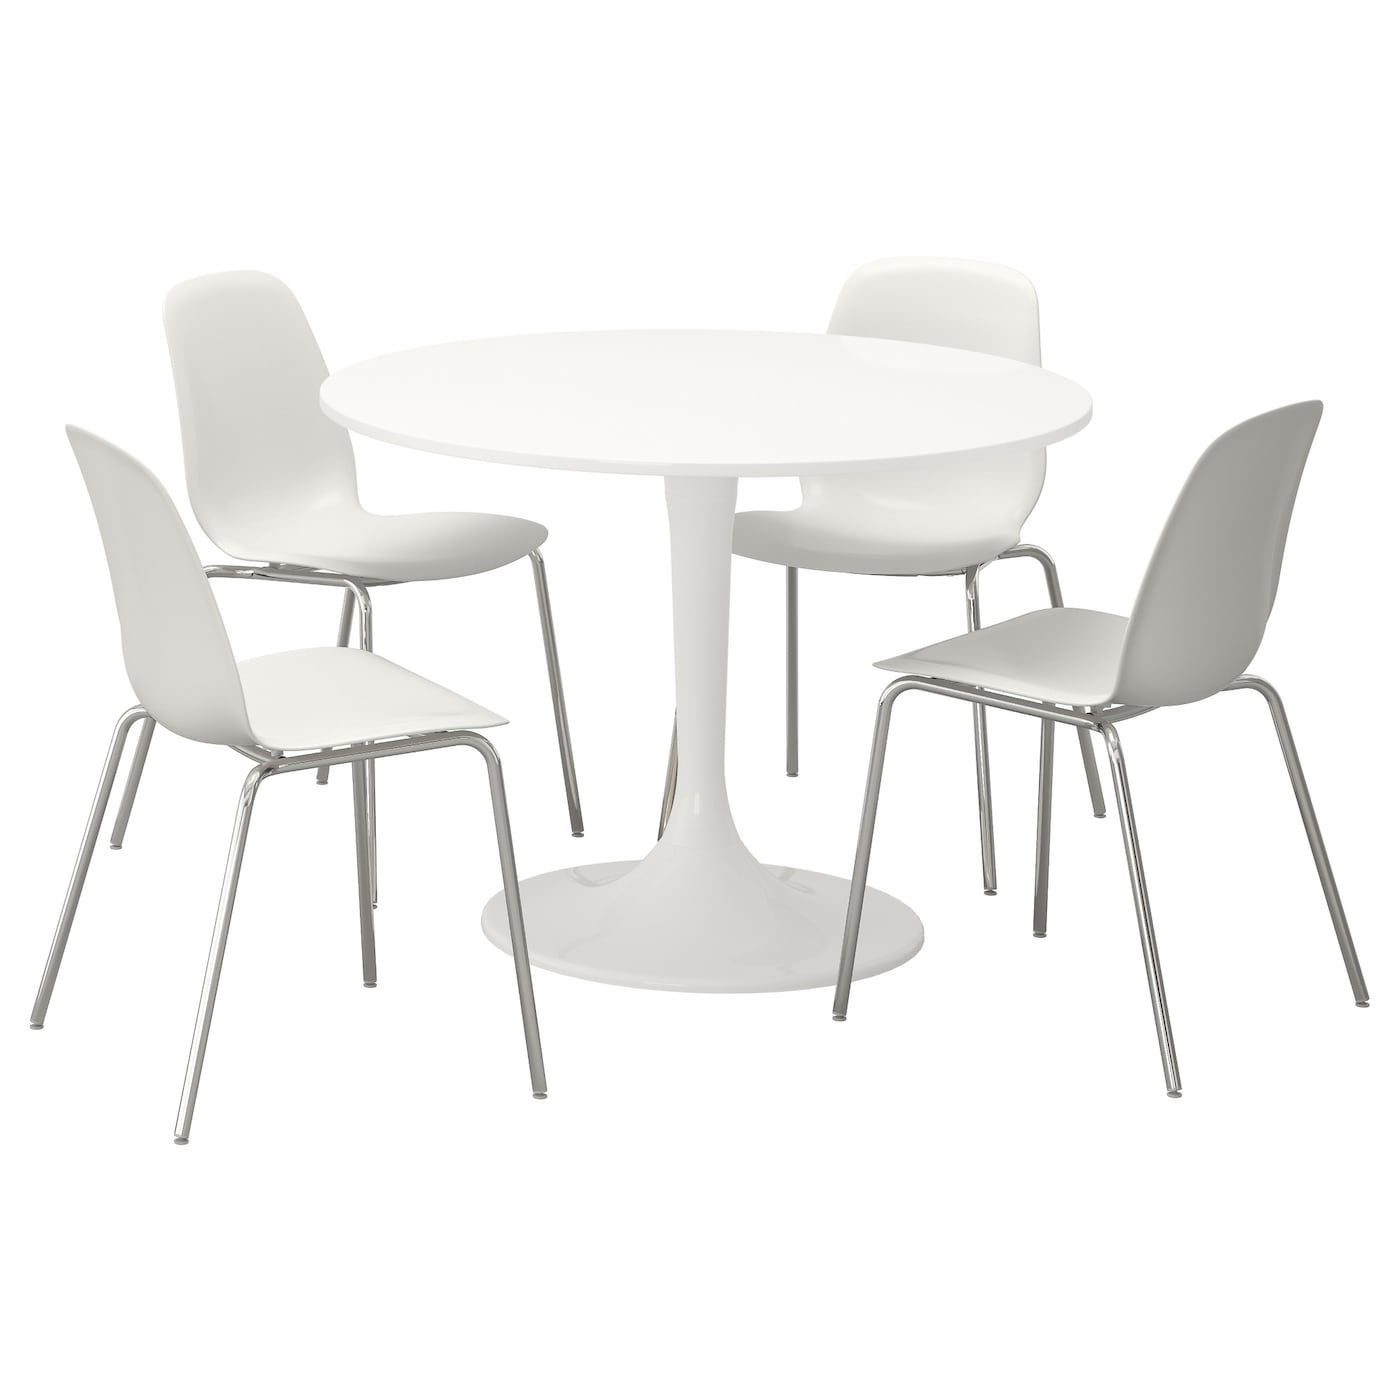 Docksta leifarne table and 4 chairs white white 105 cm ikea for Ikea dining table and chairs set